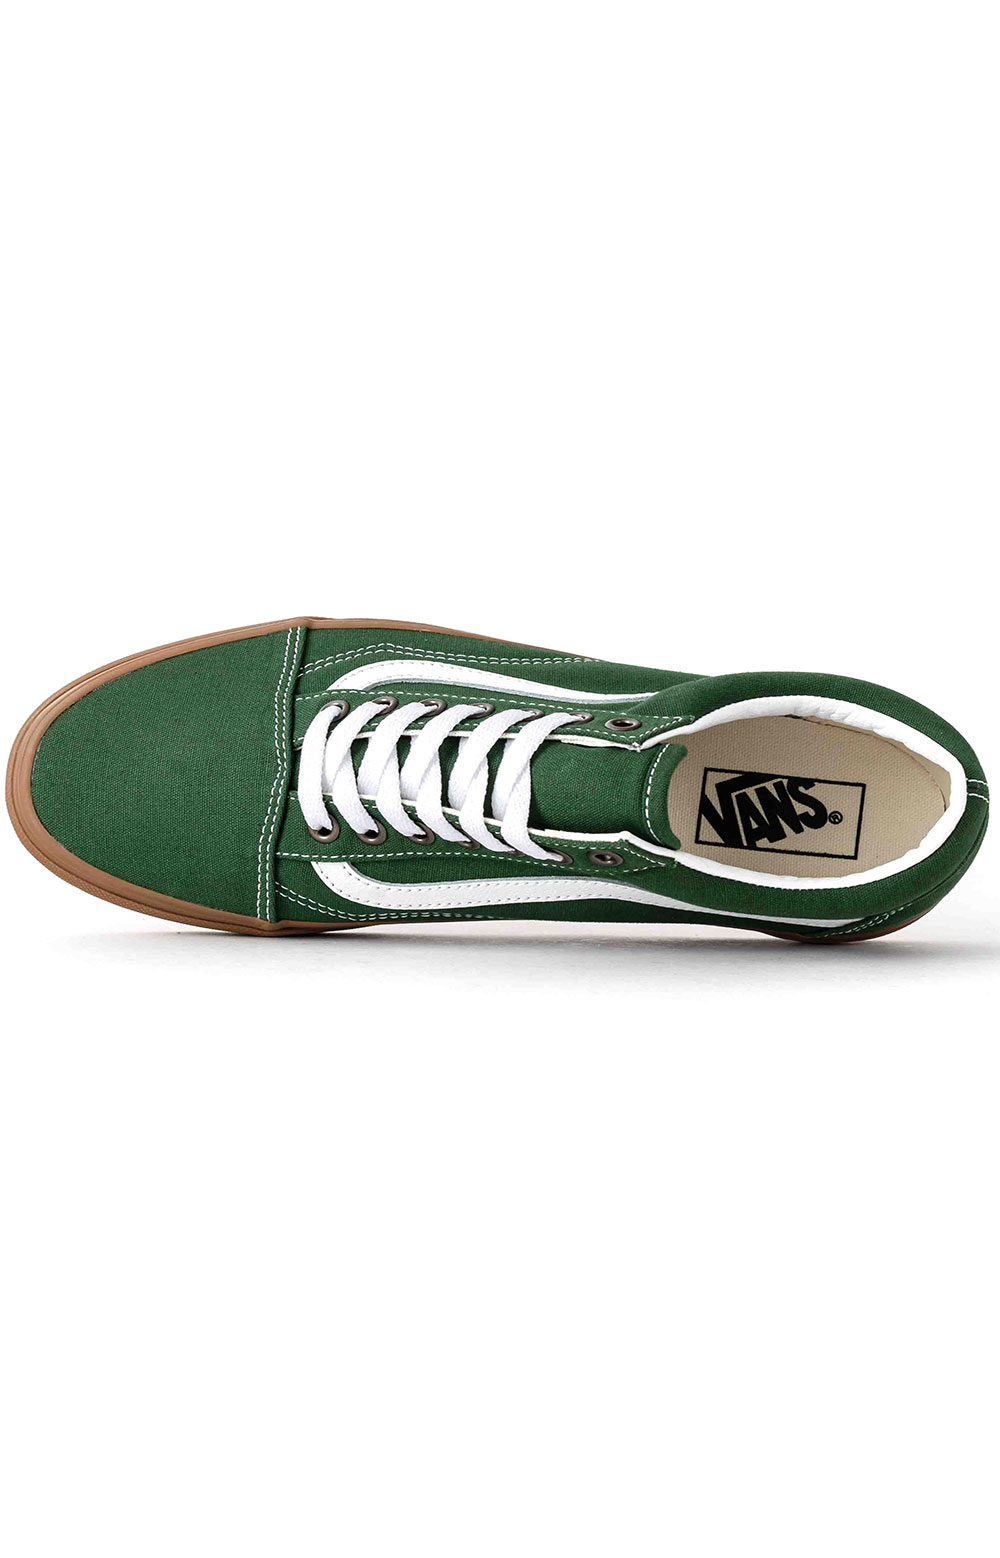 (U3BWYY) Gum Old Skool Shoe - Green Pastures  2